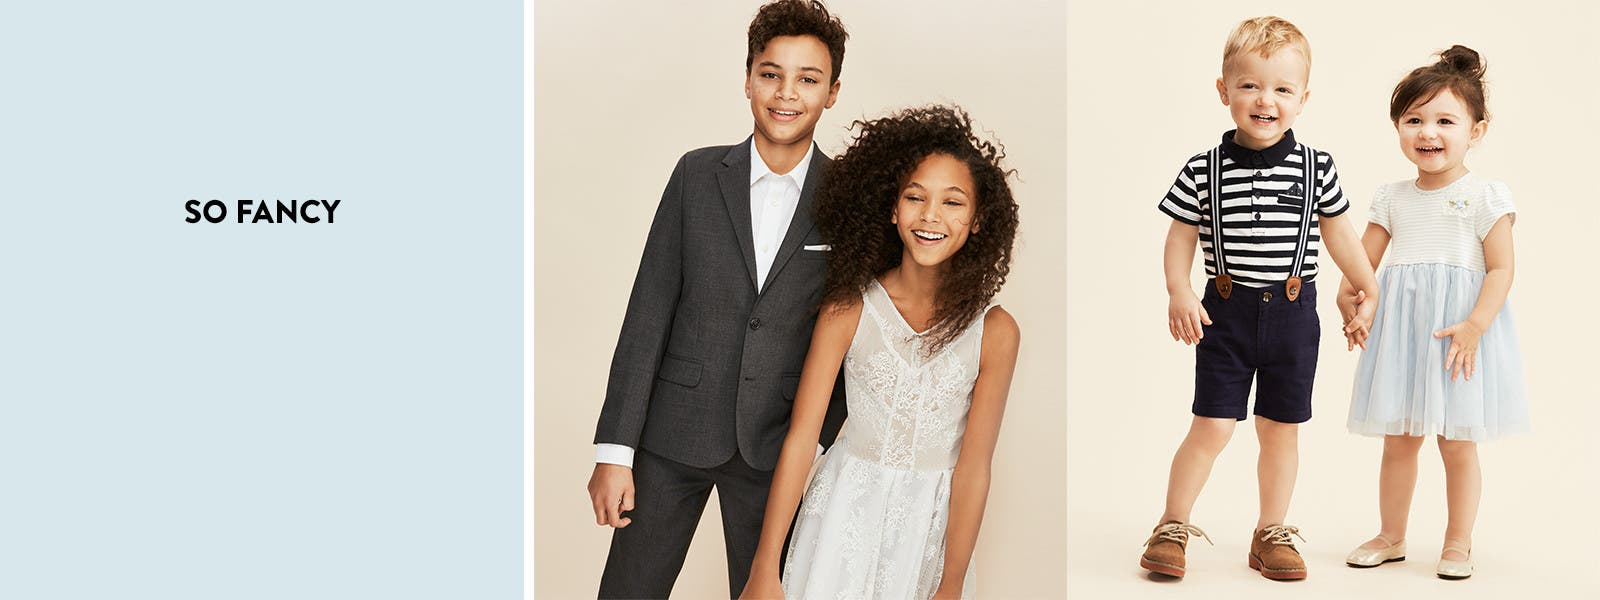 So fancy: supercute party styles for kids.